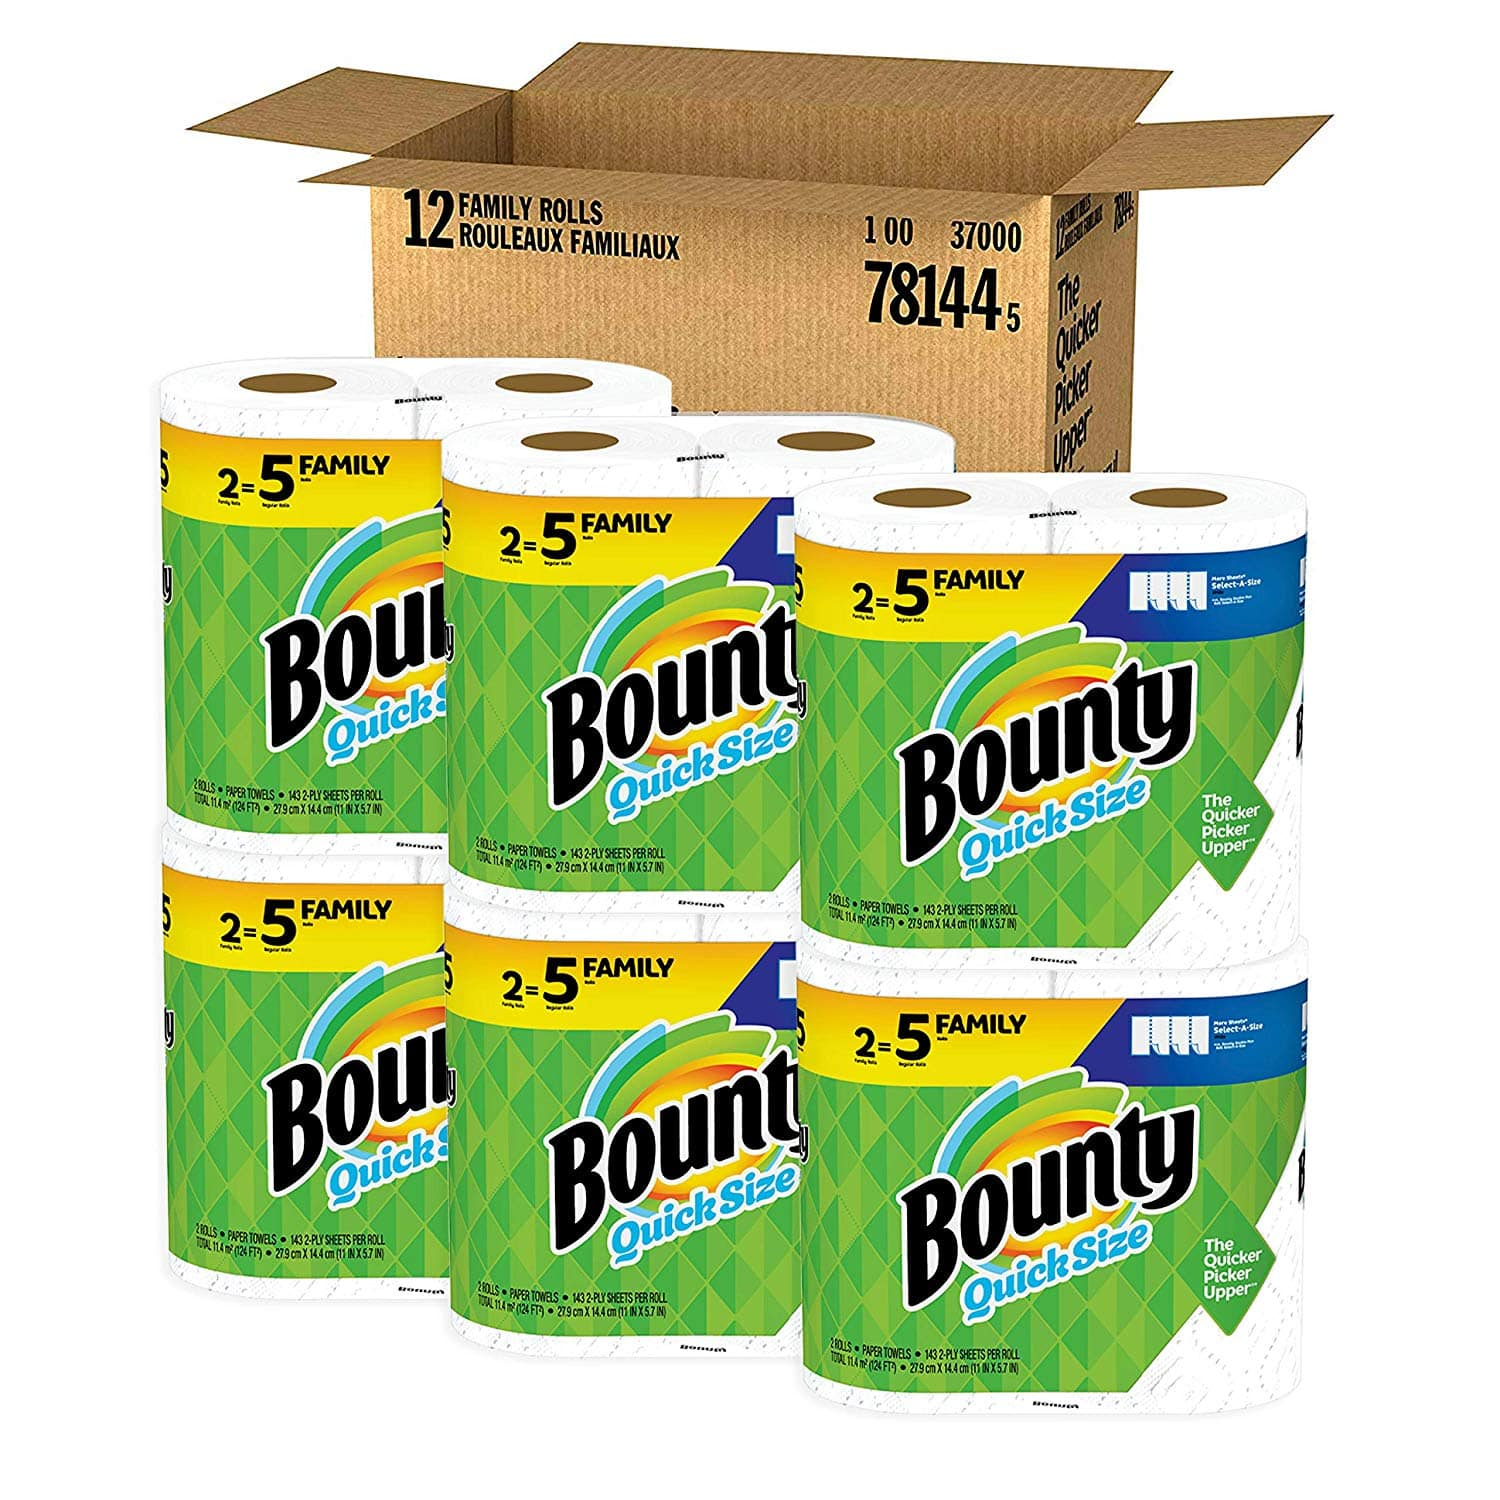 Bounty Quick-Size Paper Towels, White, Family Rolls, 12 Count (Equal to 30 Regular Rolls) Amazon Warehouse $16.34